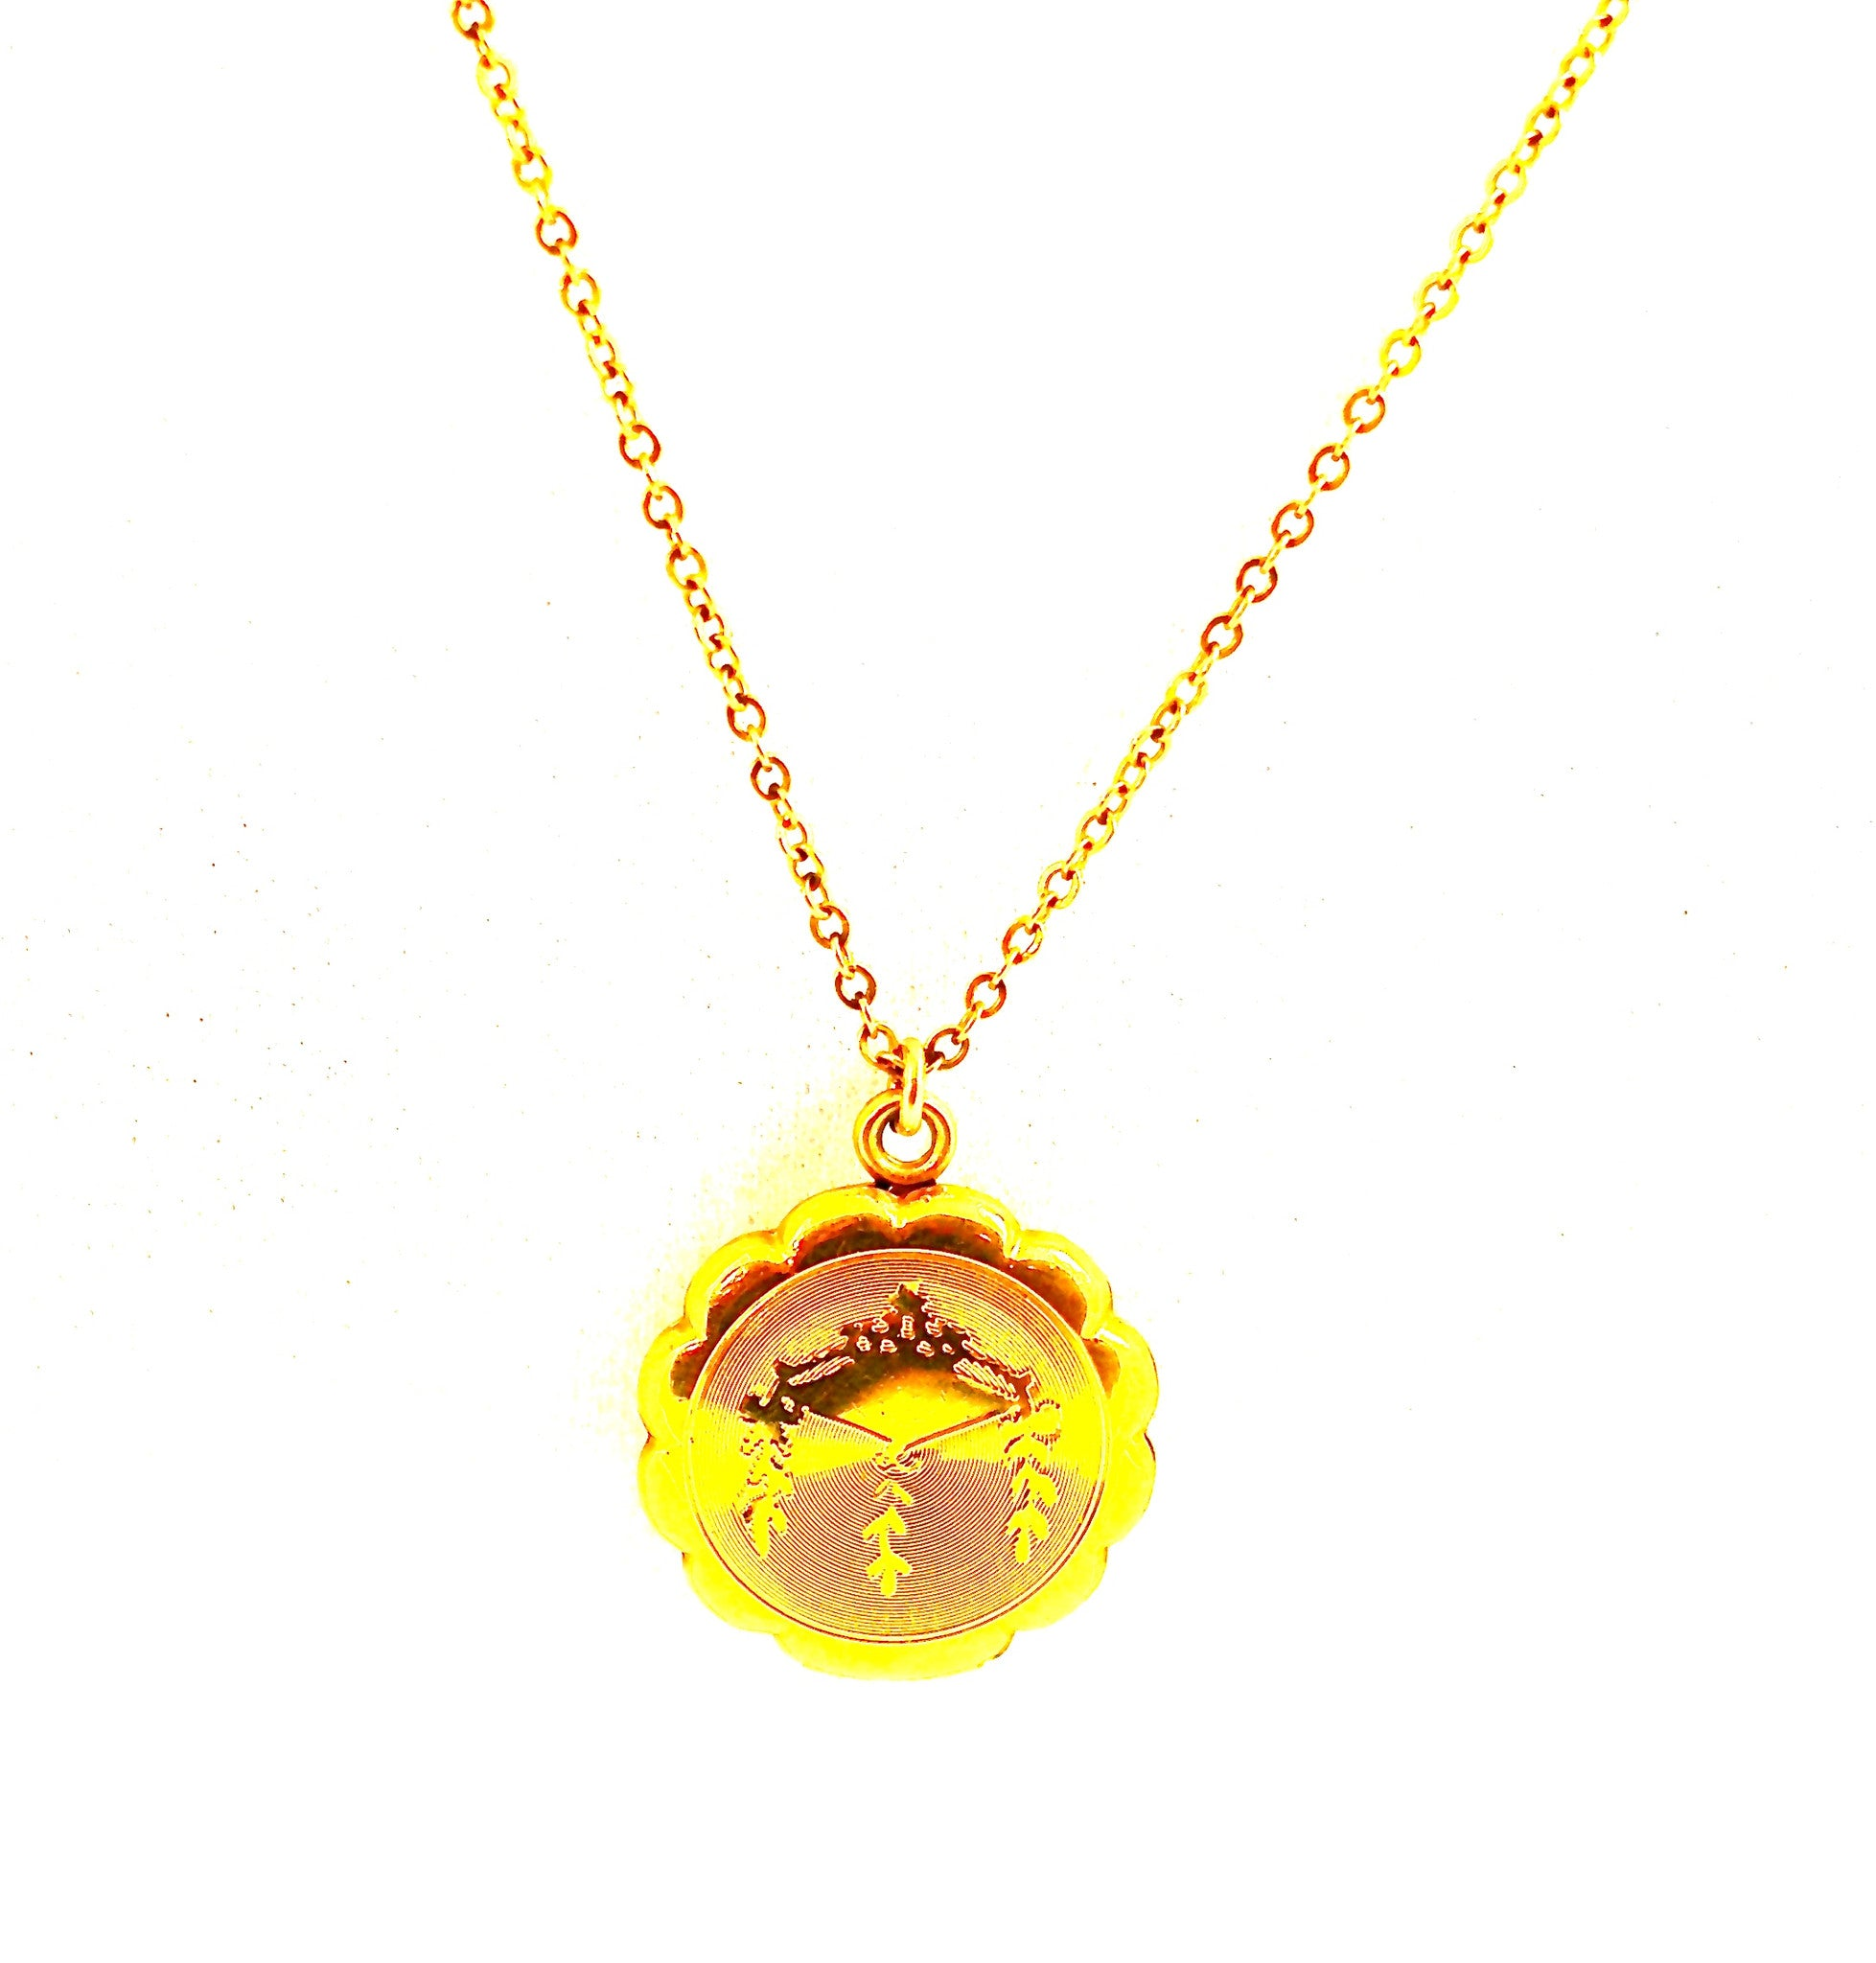 GOLD FILLED LOCKET NECKLACE FROM THE 1950s